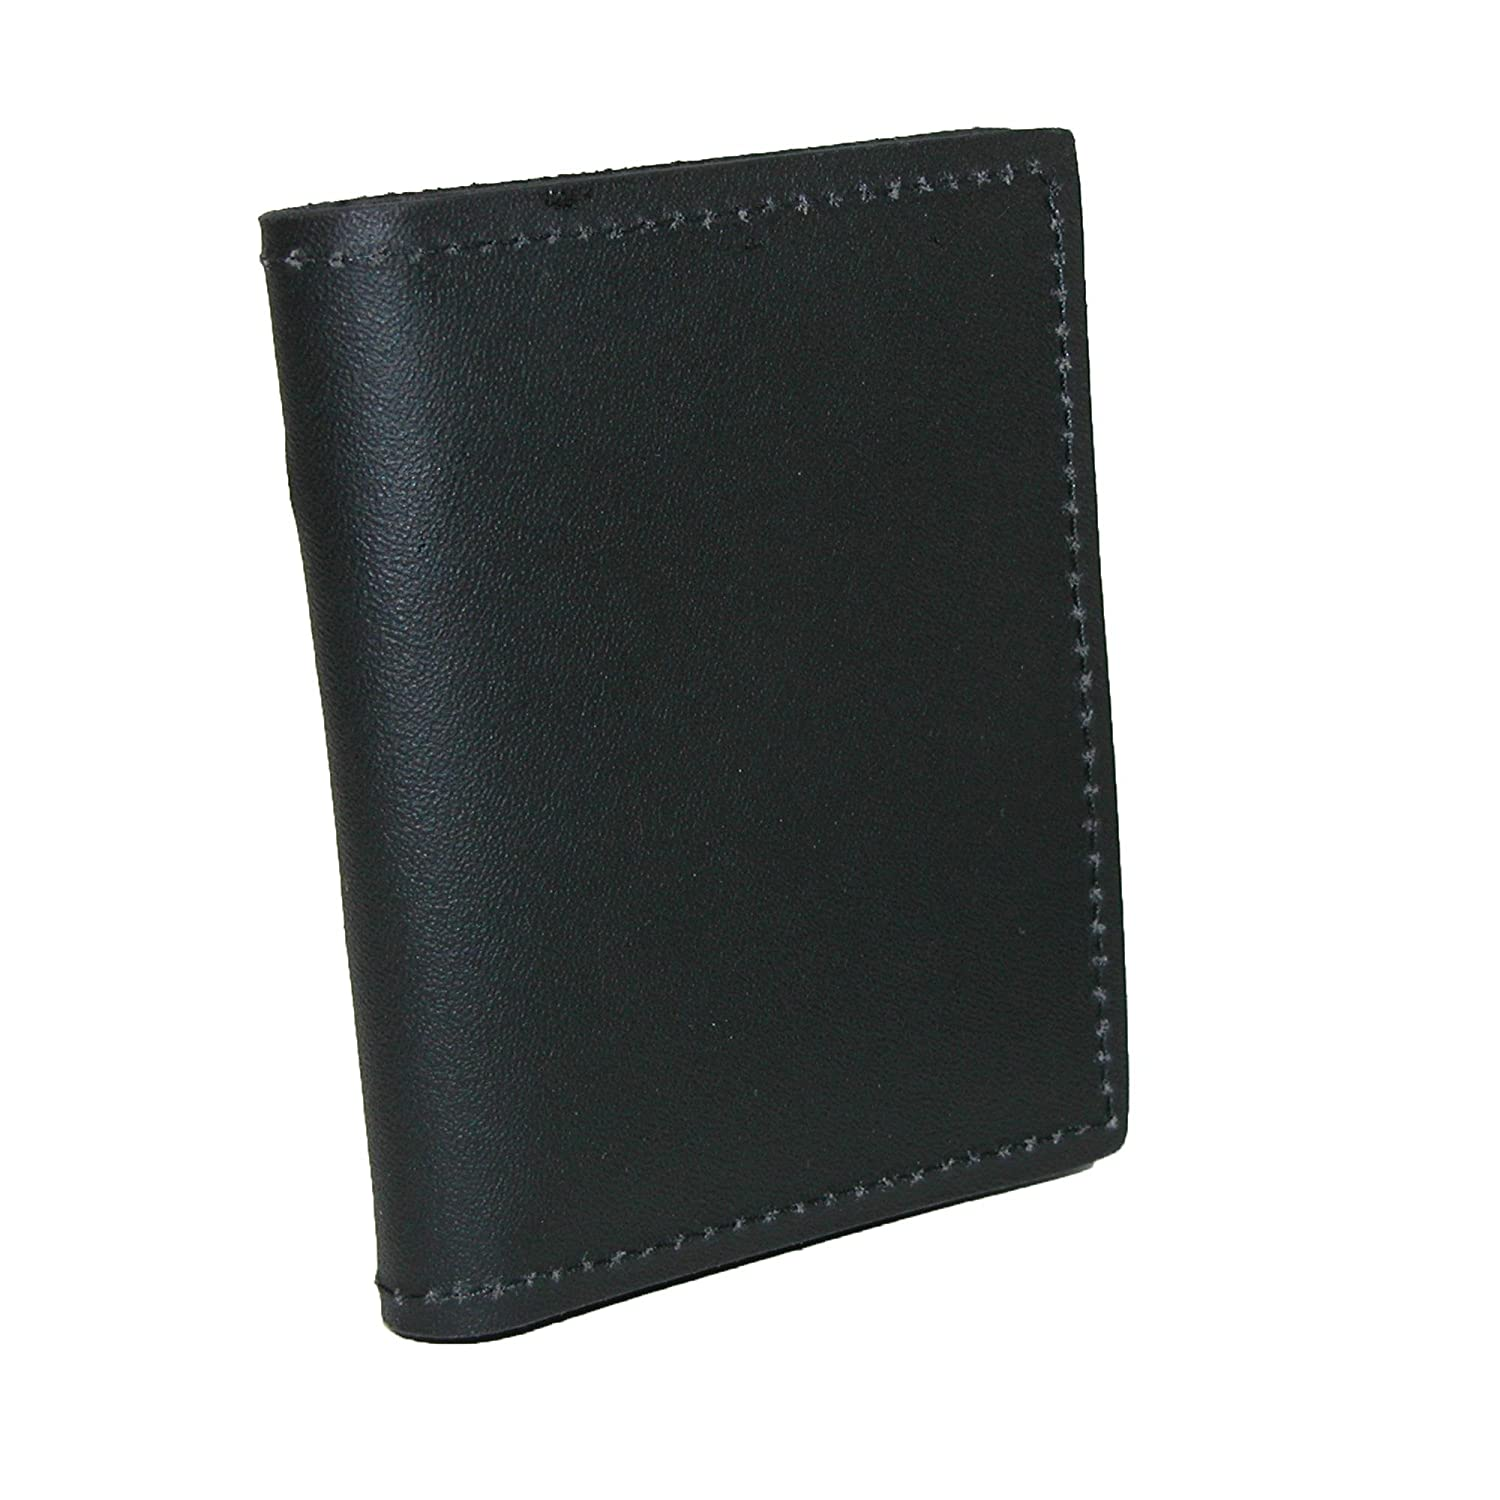 Boston Leather Leather Book Style Bifold Badge Holder Wallet, Black